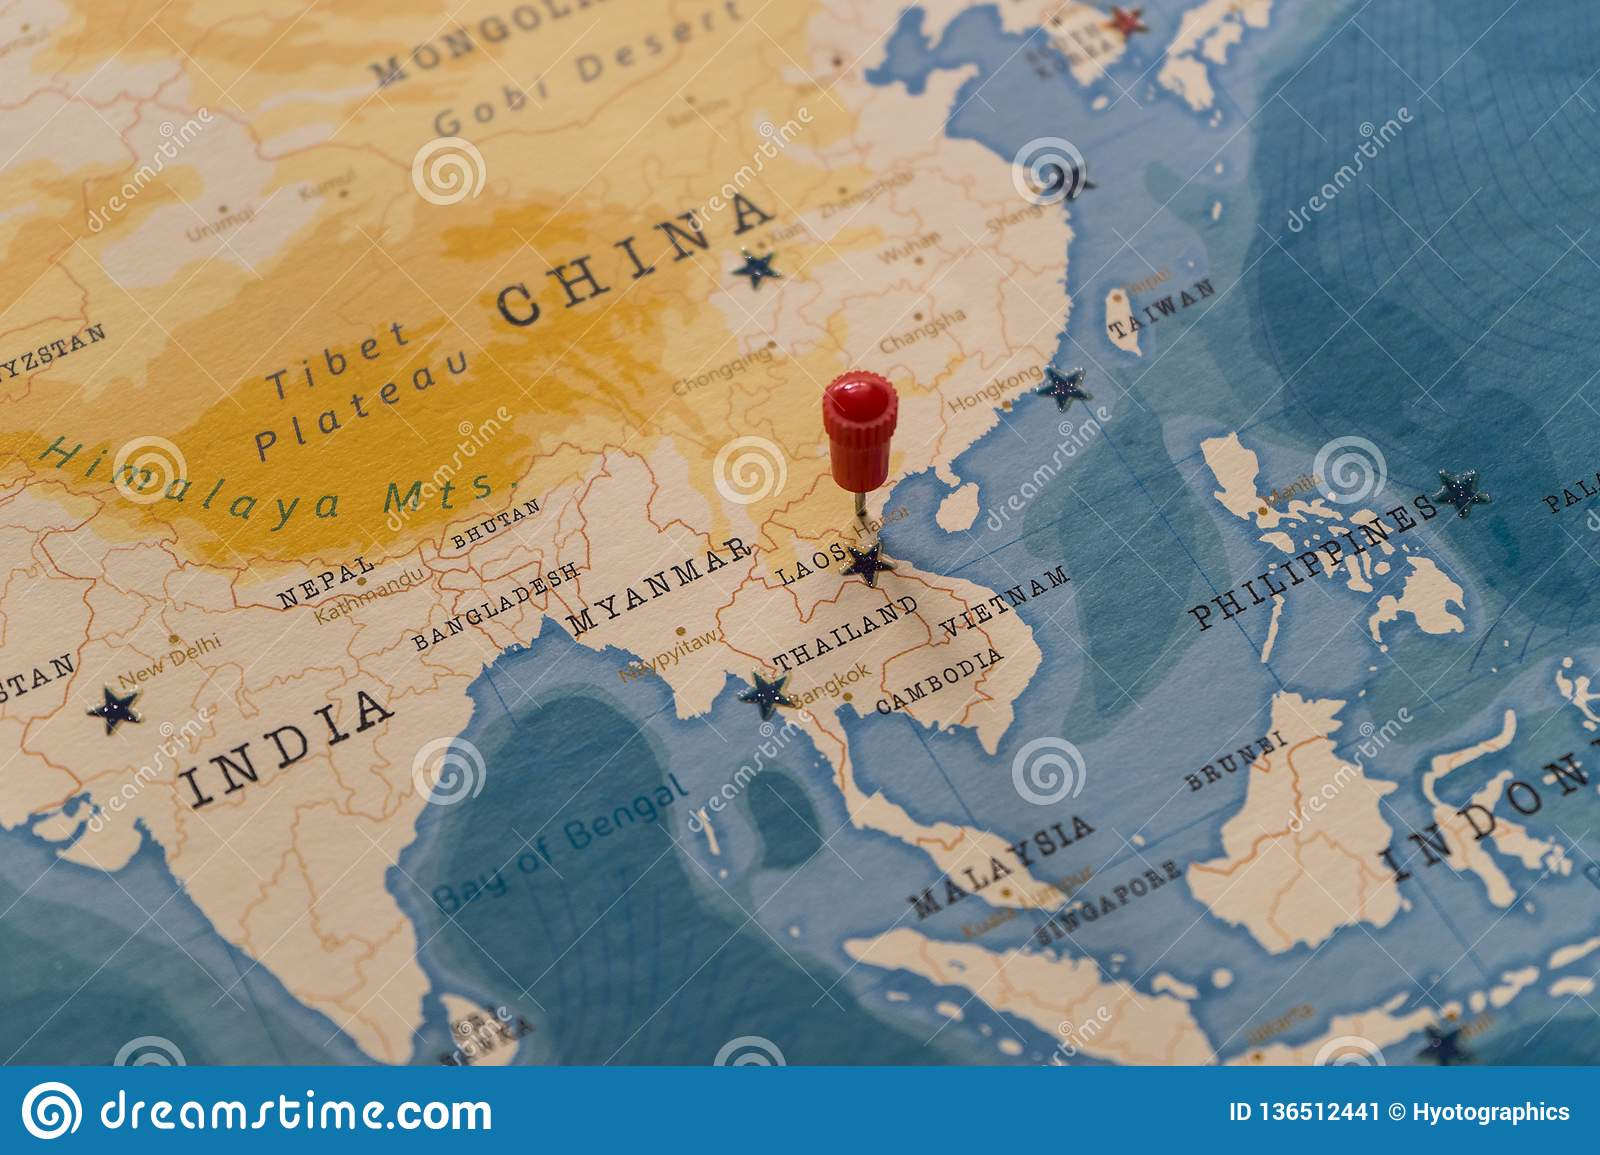 A Pin On Hanoi Vietnam In The World Map Stock Image Image Of Educational Nations 136512441